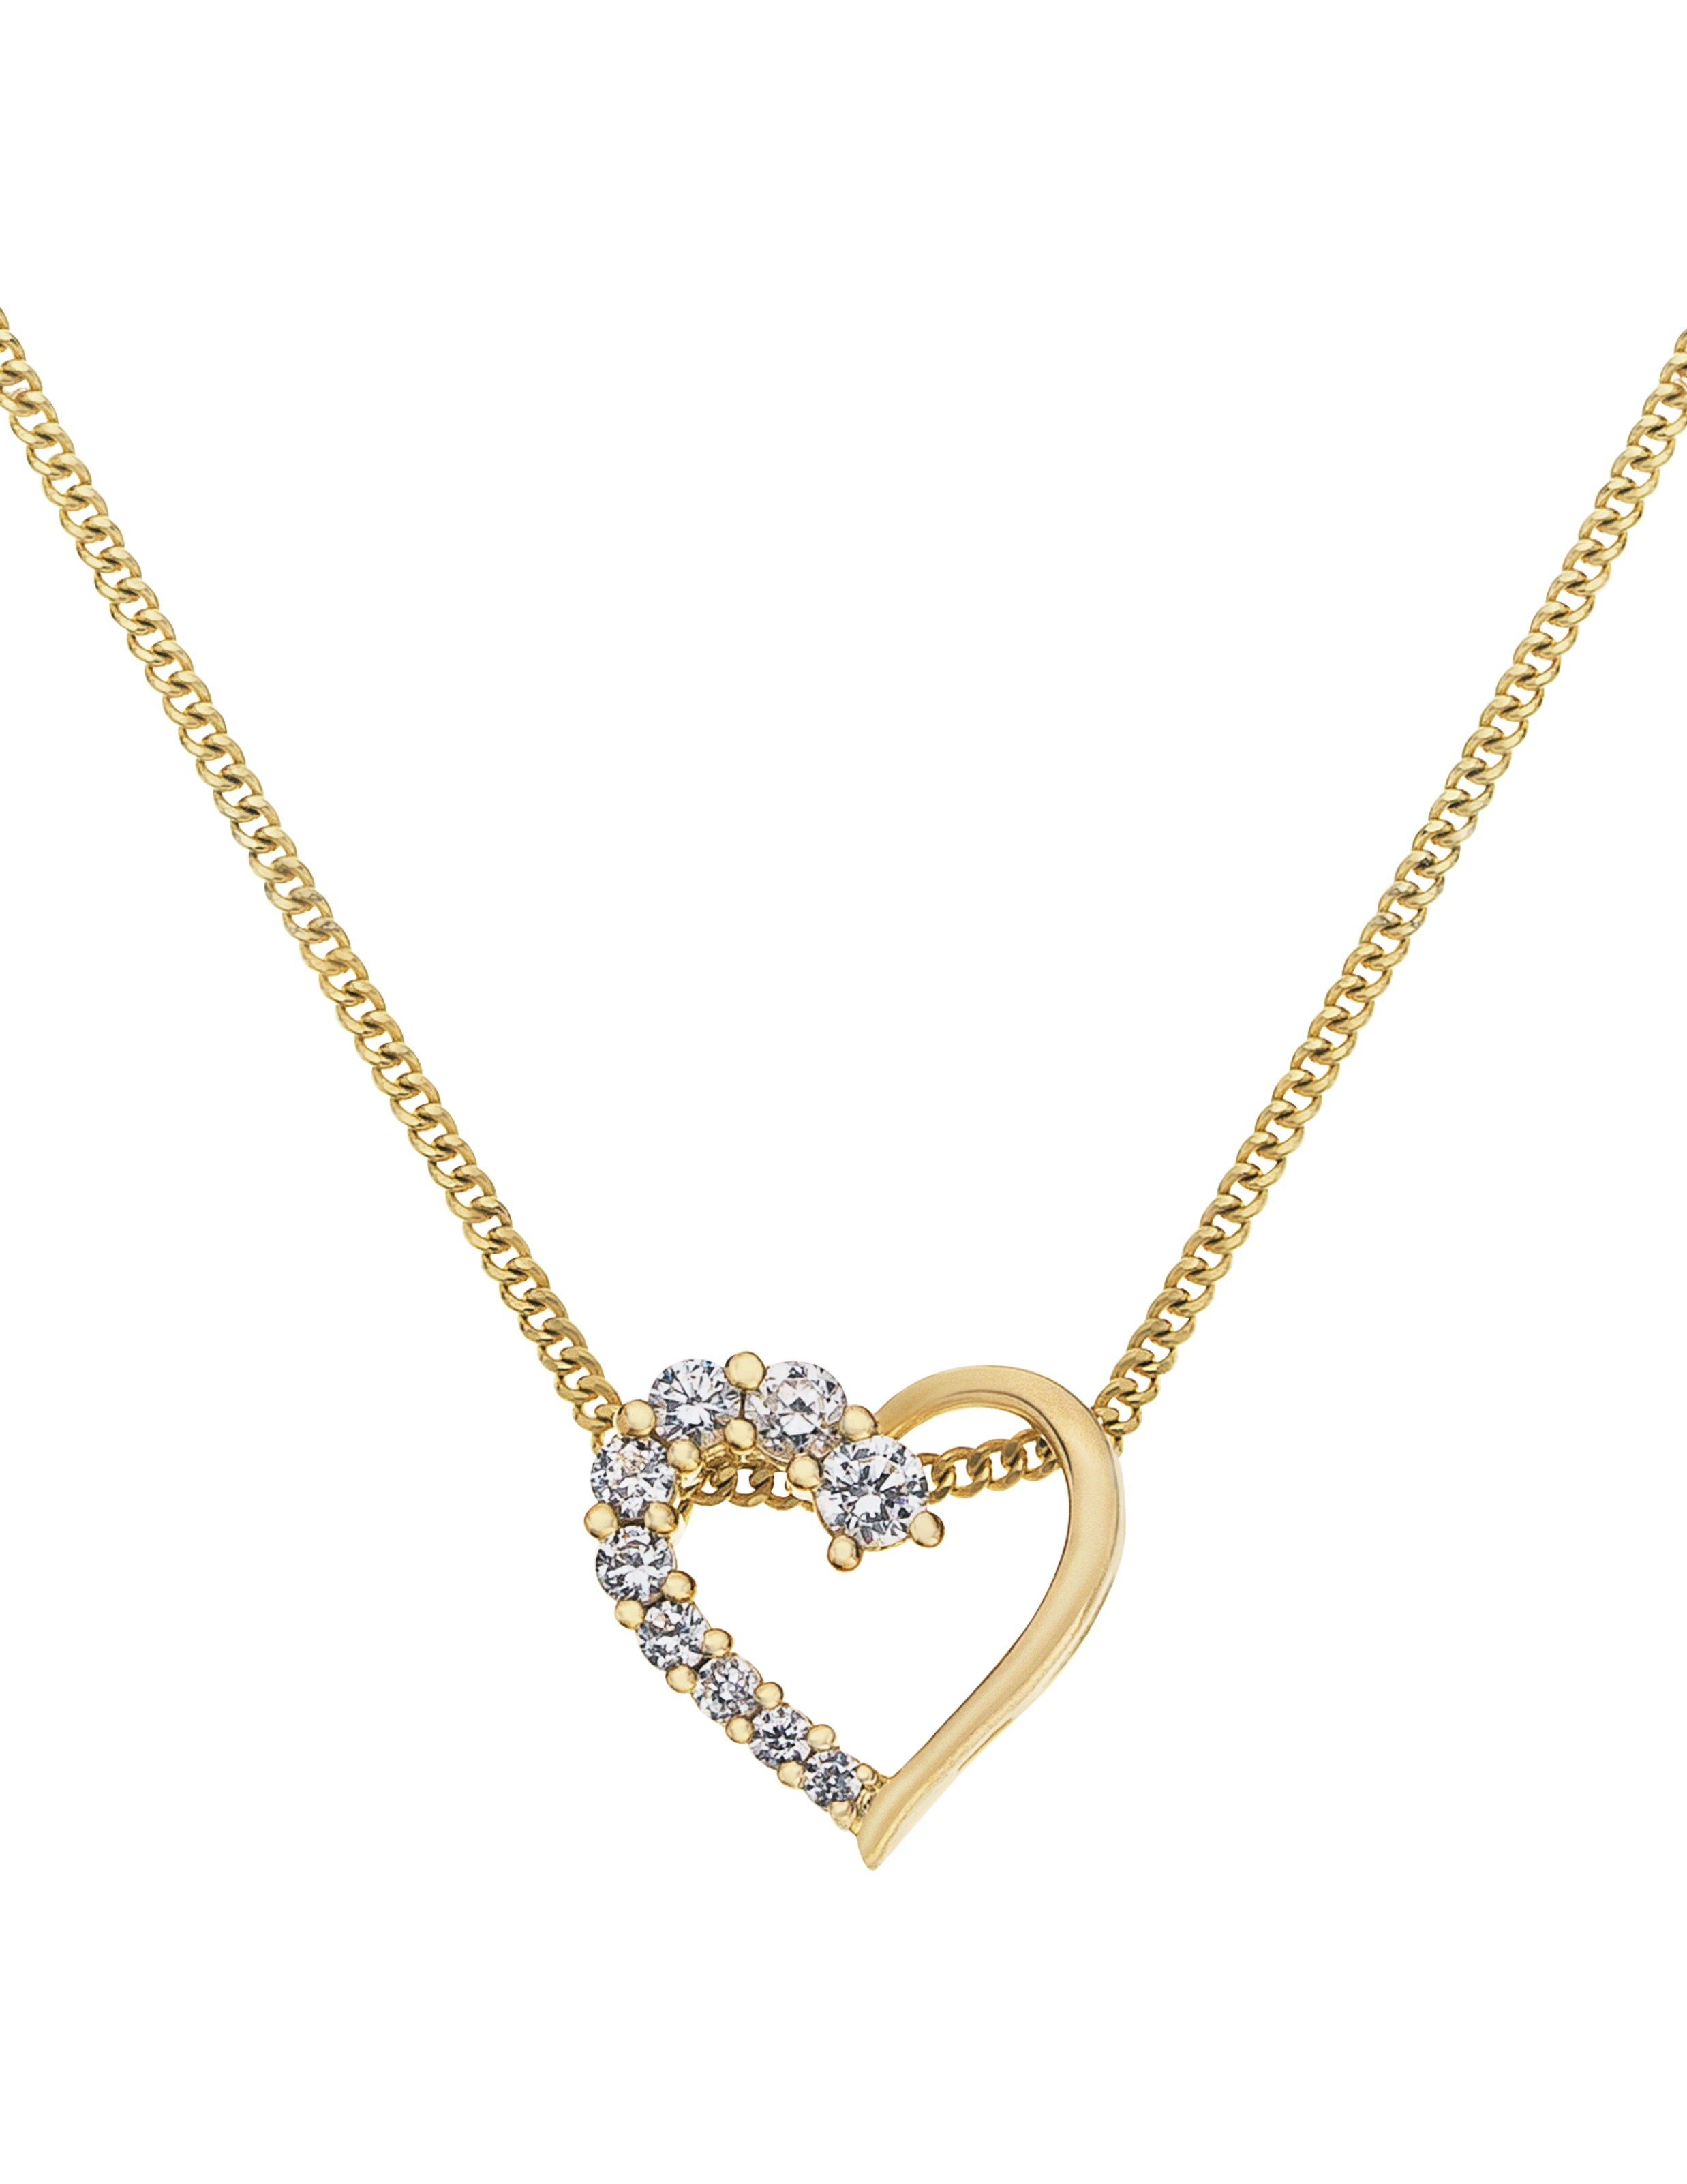 Revere 18ct Gold Plated Sterling Silver CZ Heart Pendant